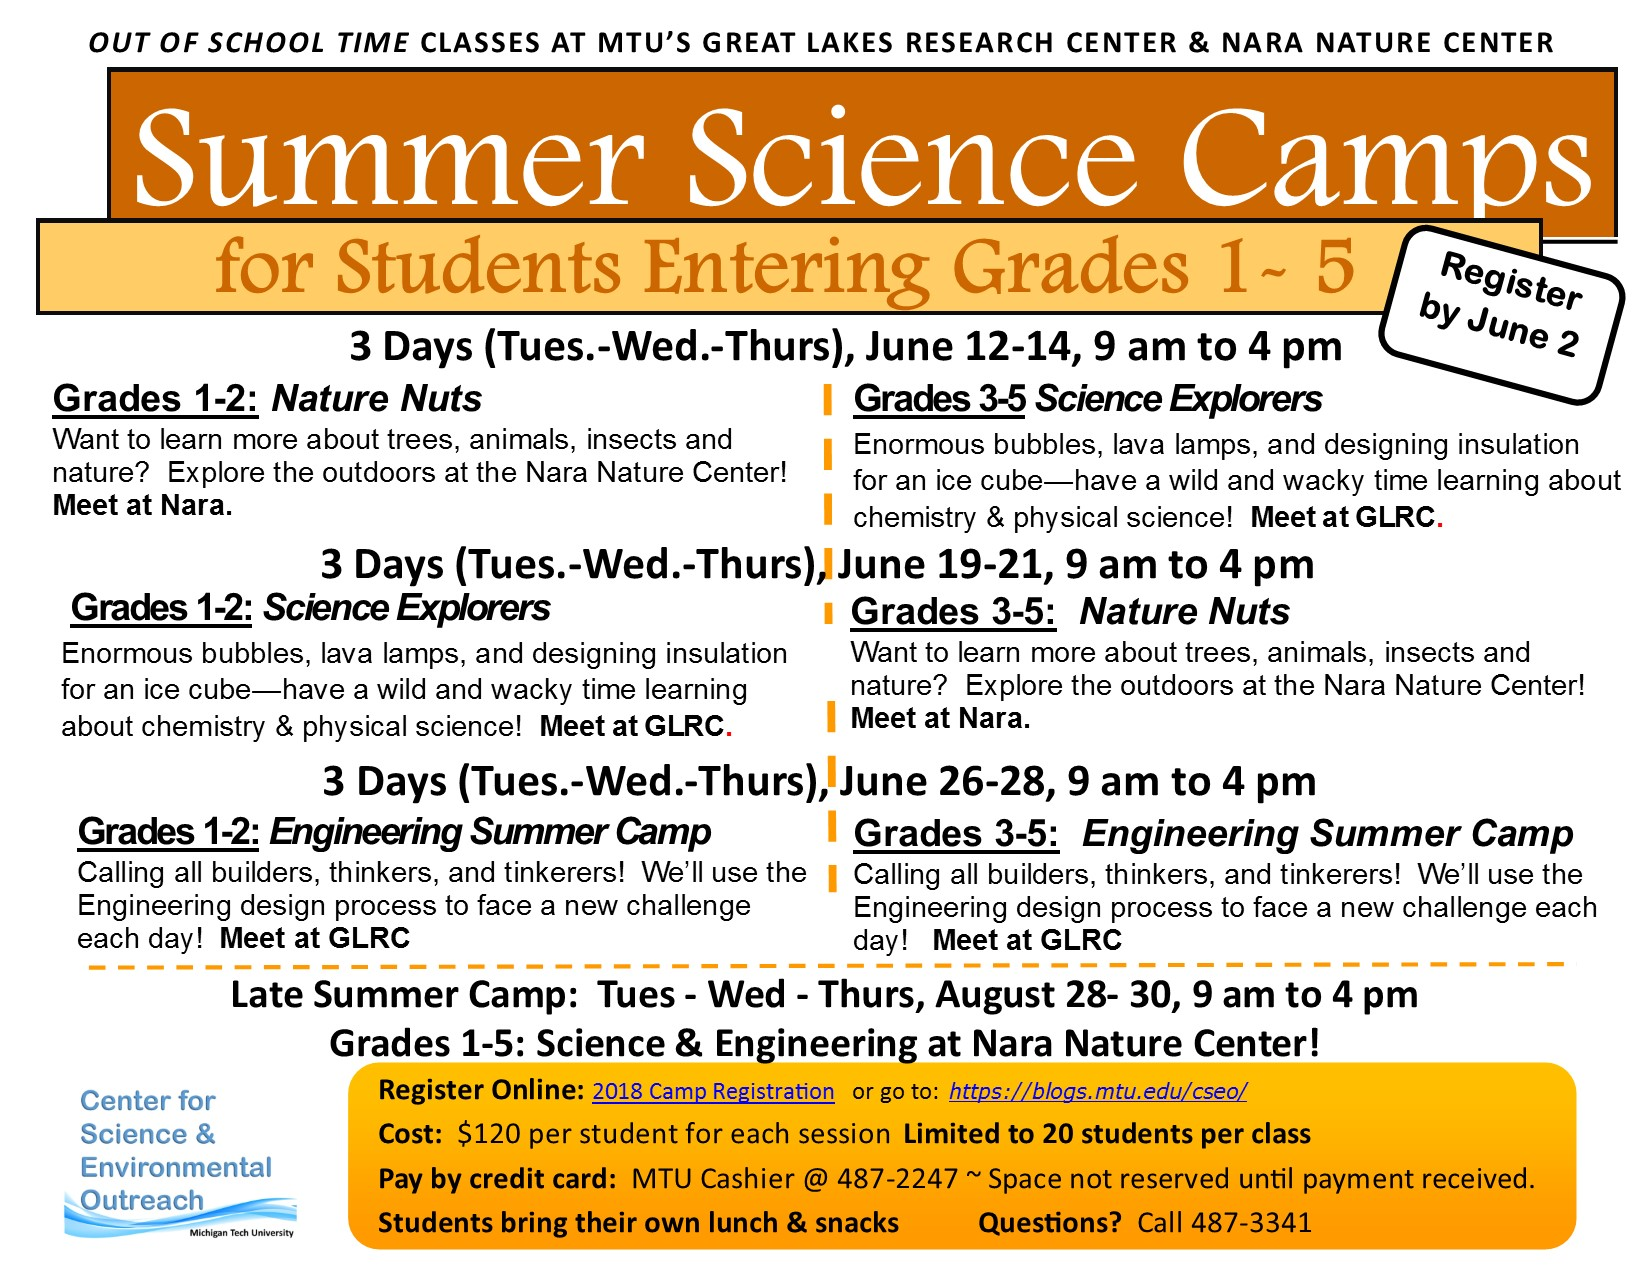 2018SummerScienceCamp_Gr.1-5 Flyer_DRAFT 05.10.18